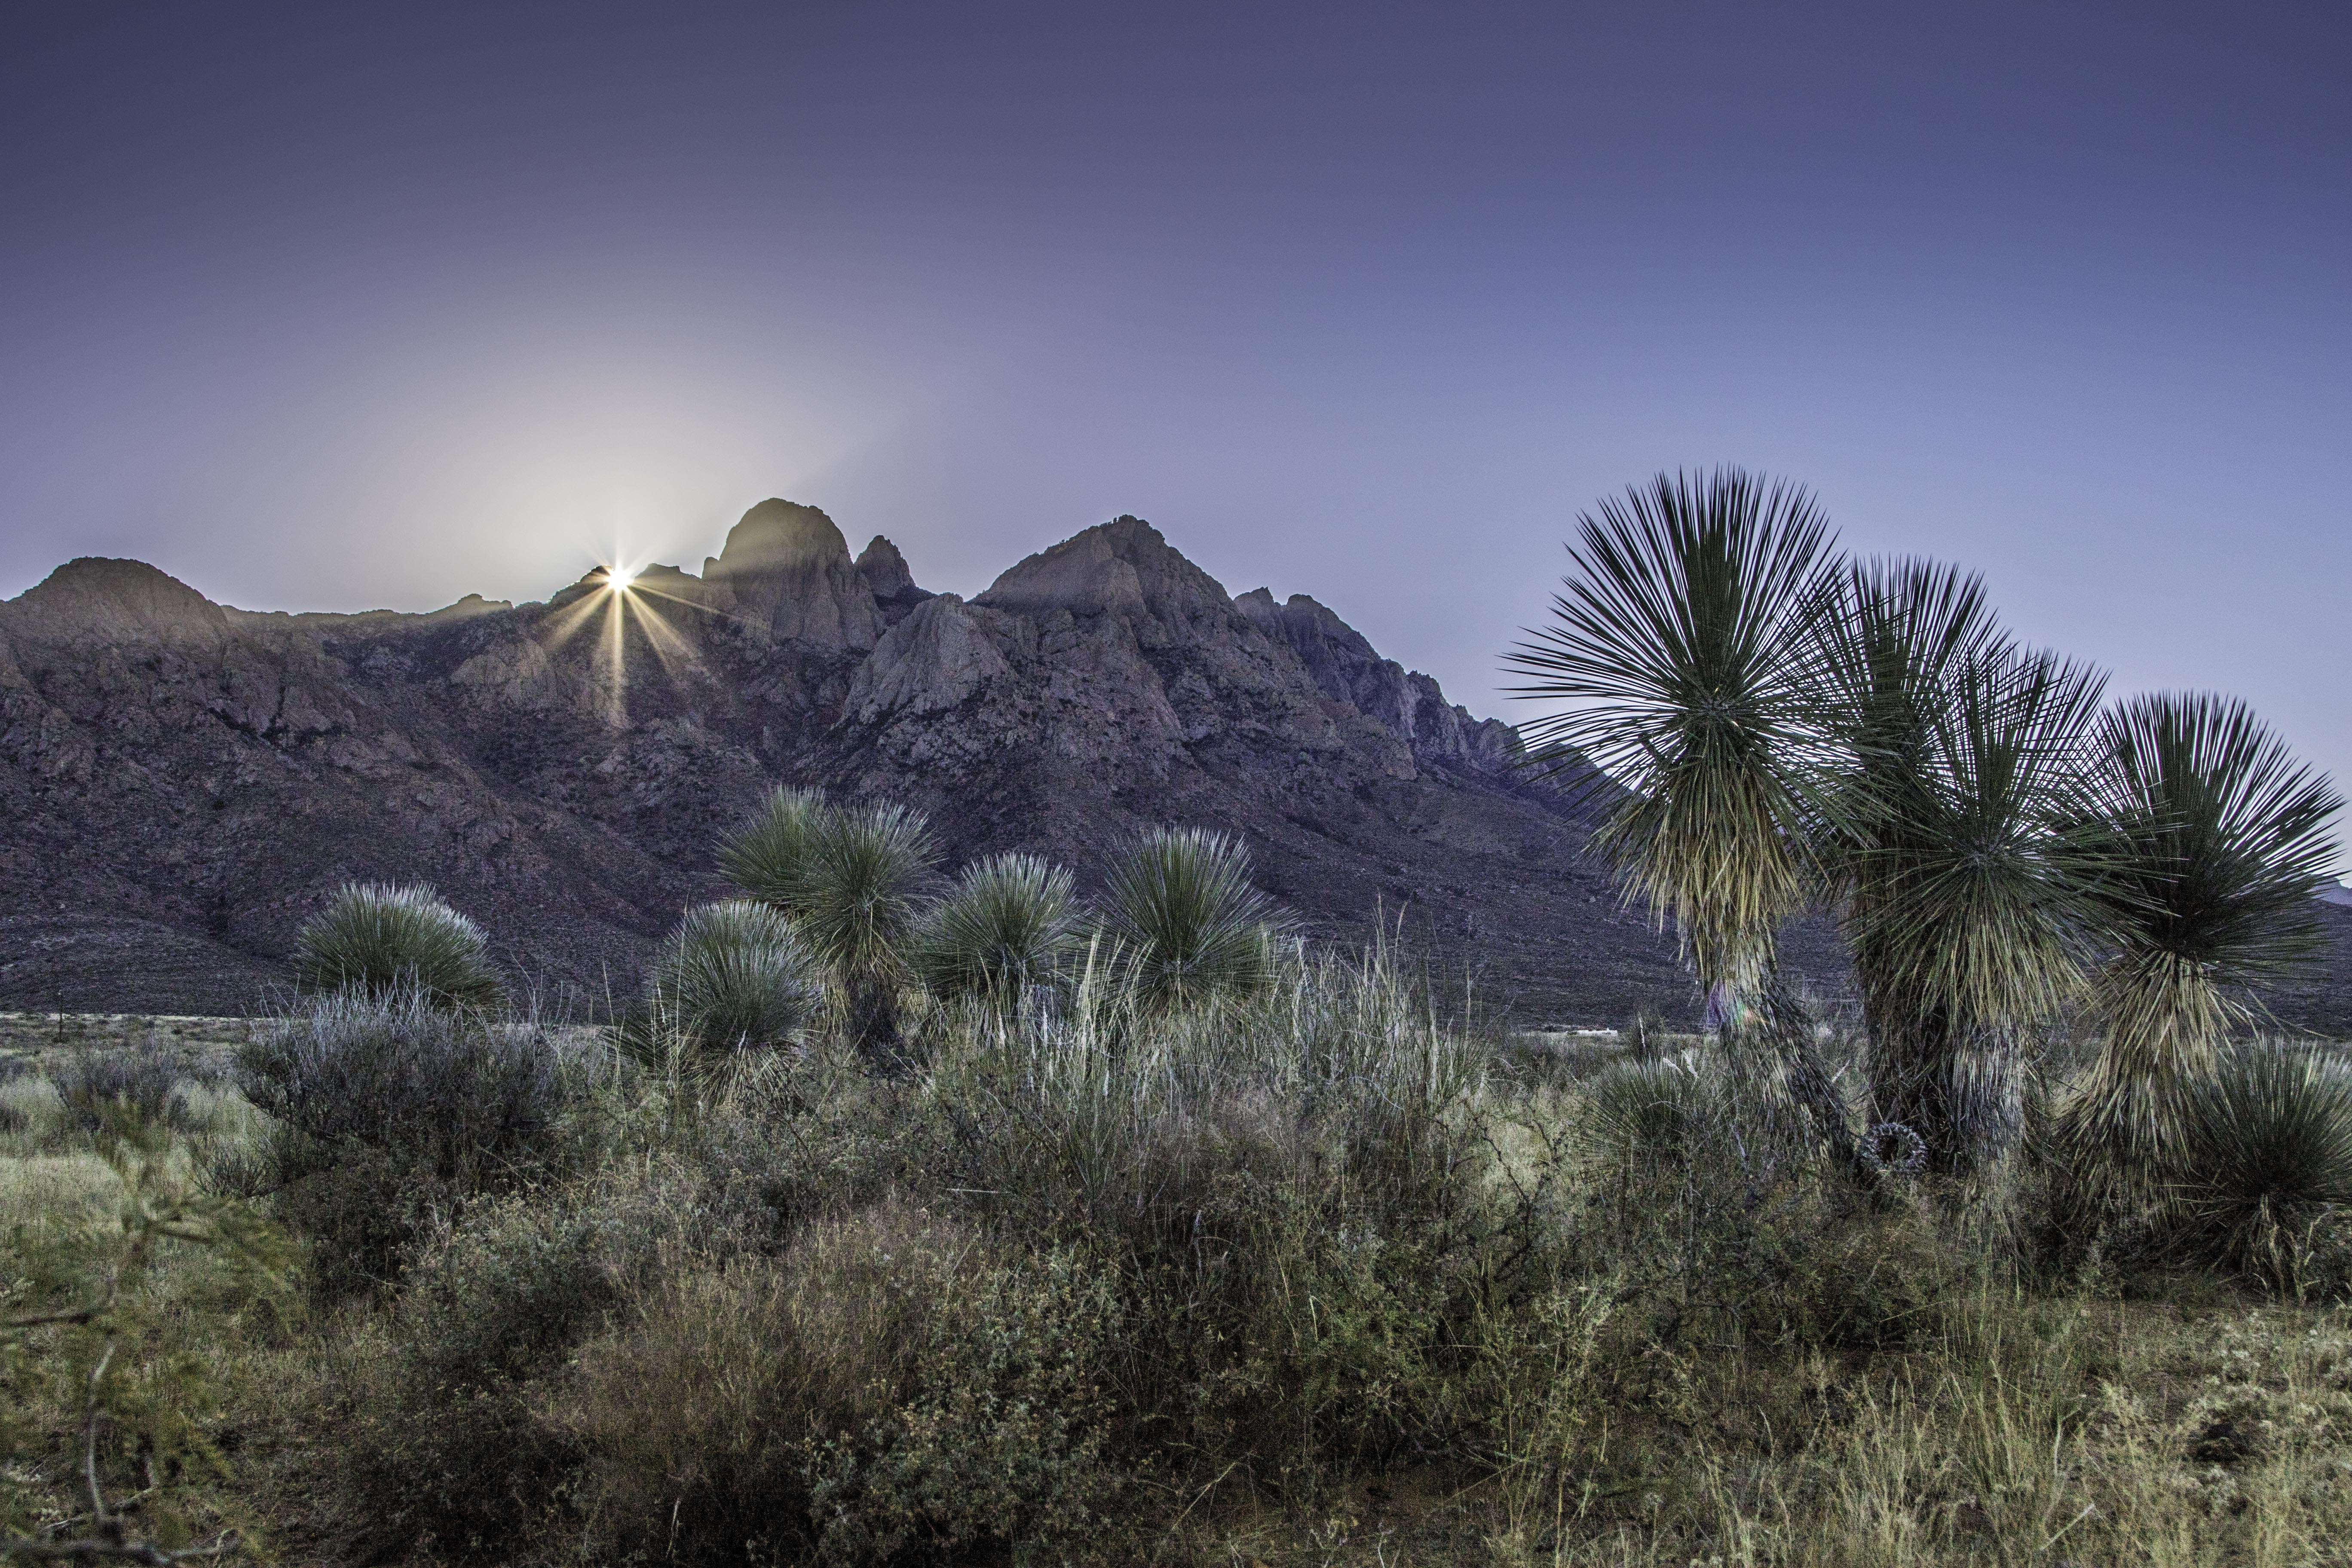 Organ Mountains-Desert Peaks, New Mexico